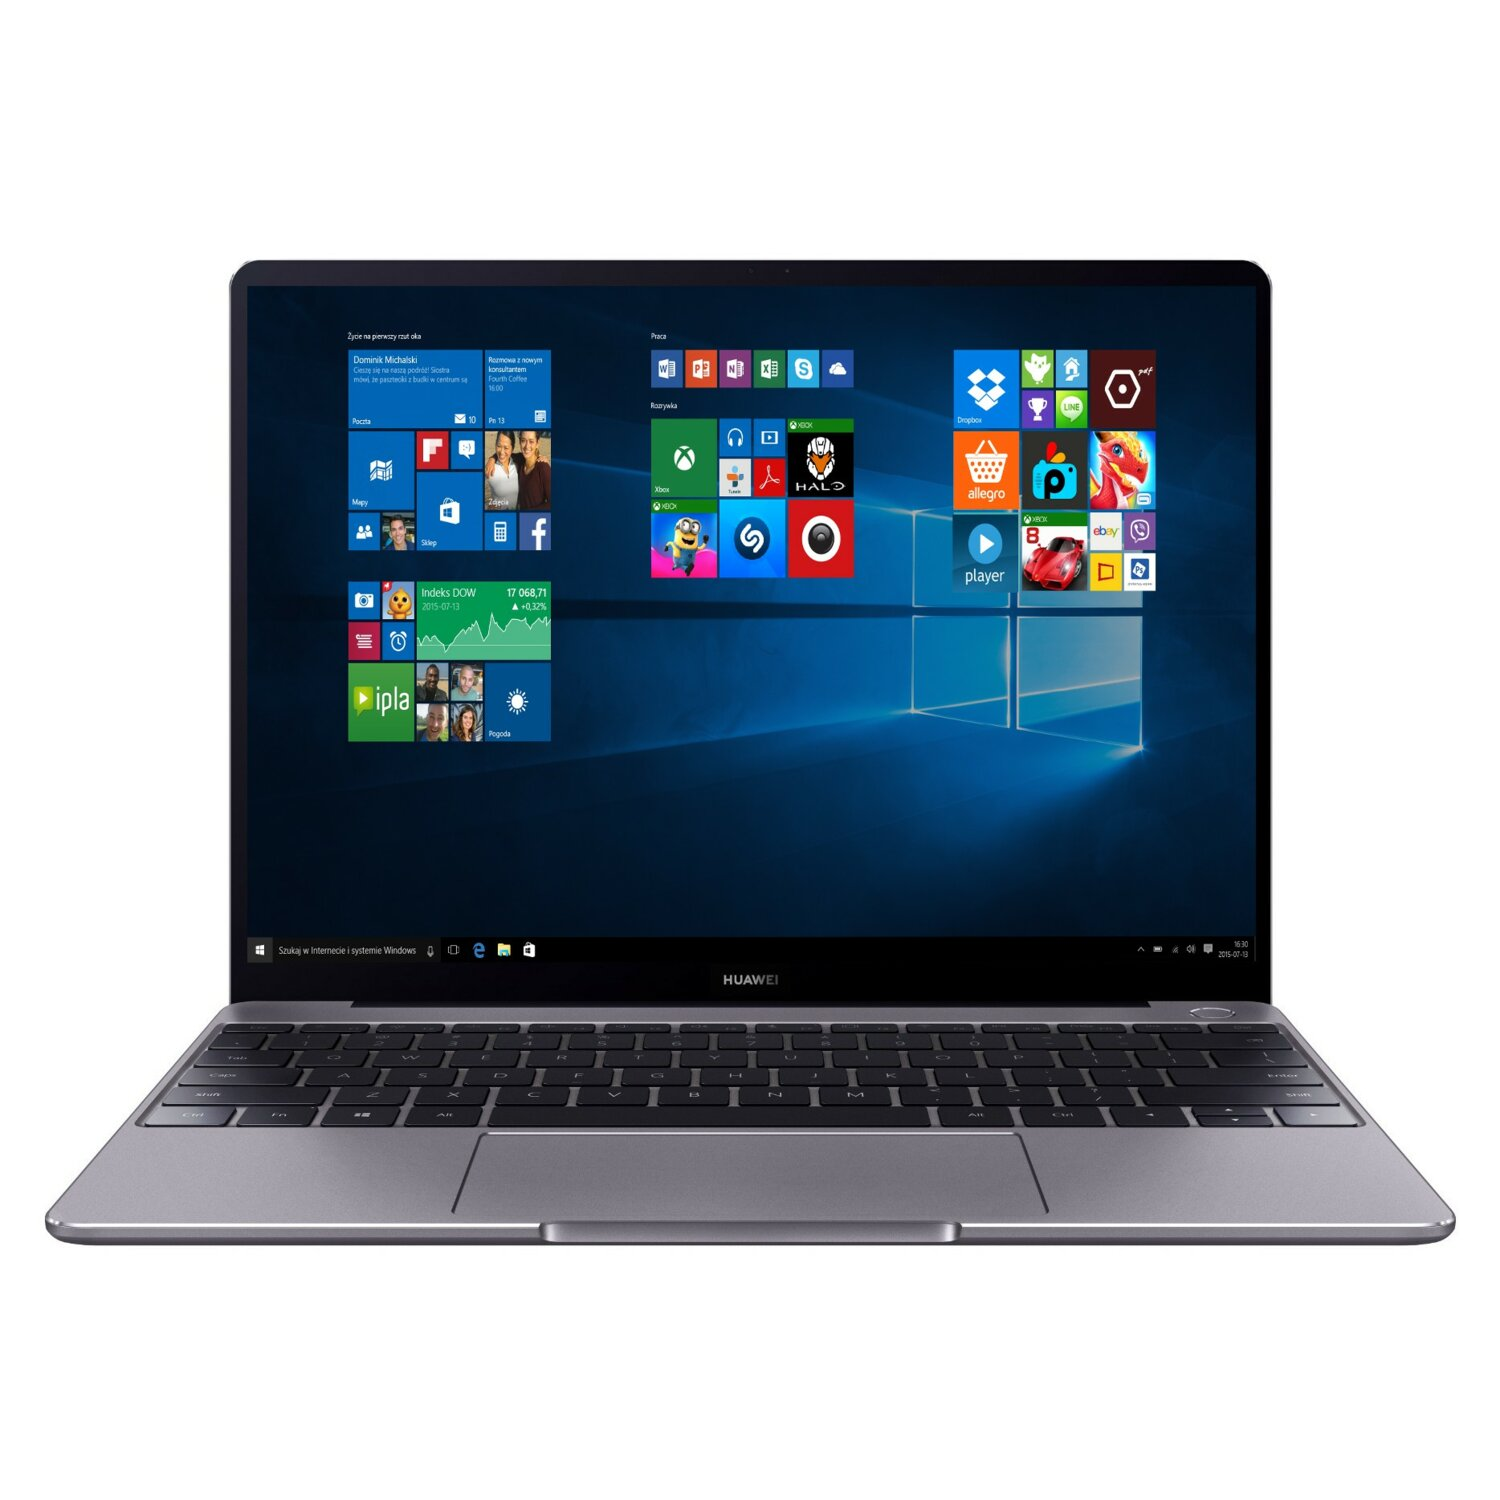 Laptop HUAWEI MateBook 13 i7-8565U/8GB/512GB SSD/MX150/Win10H Szary